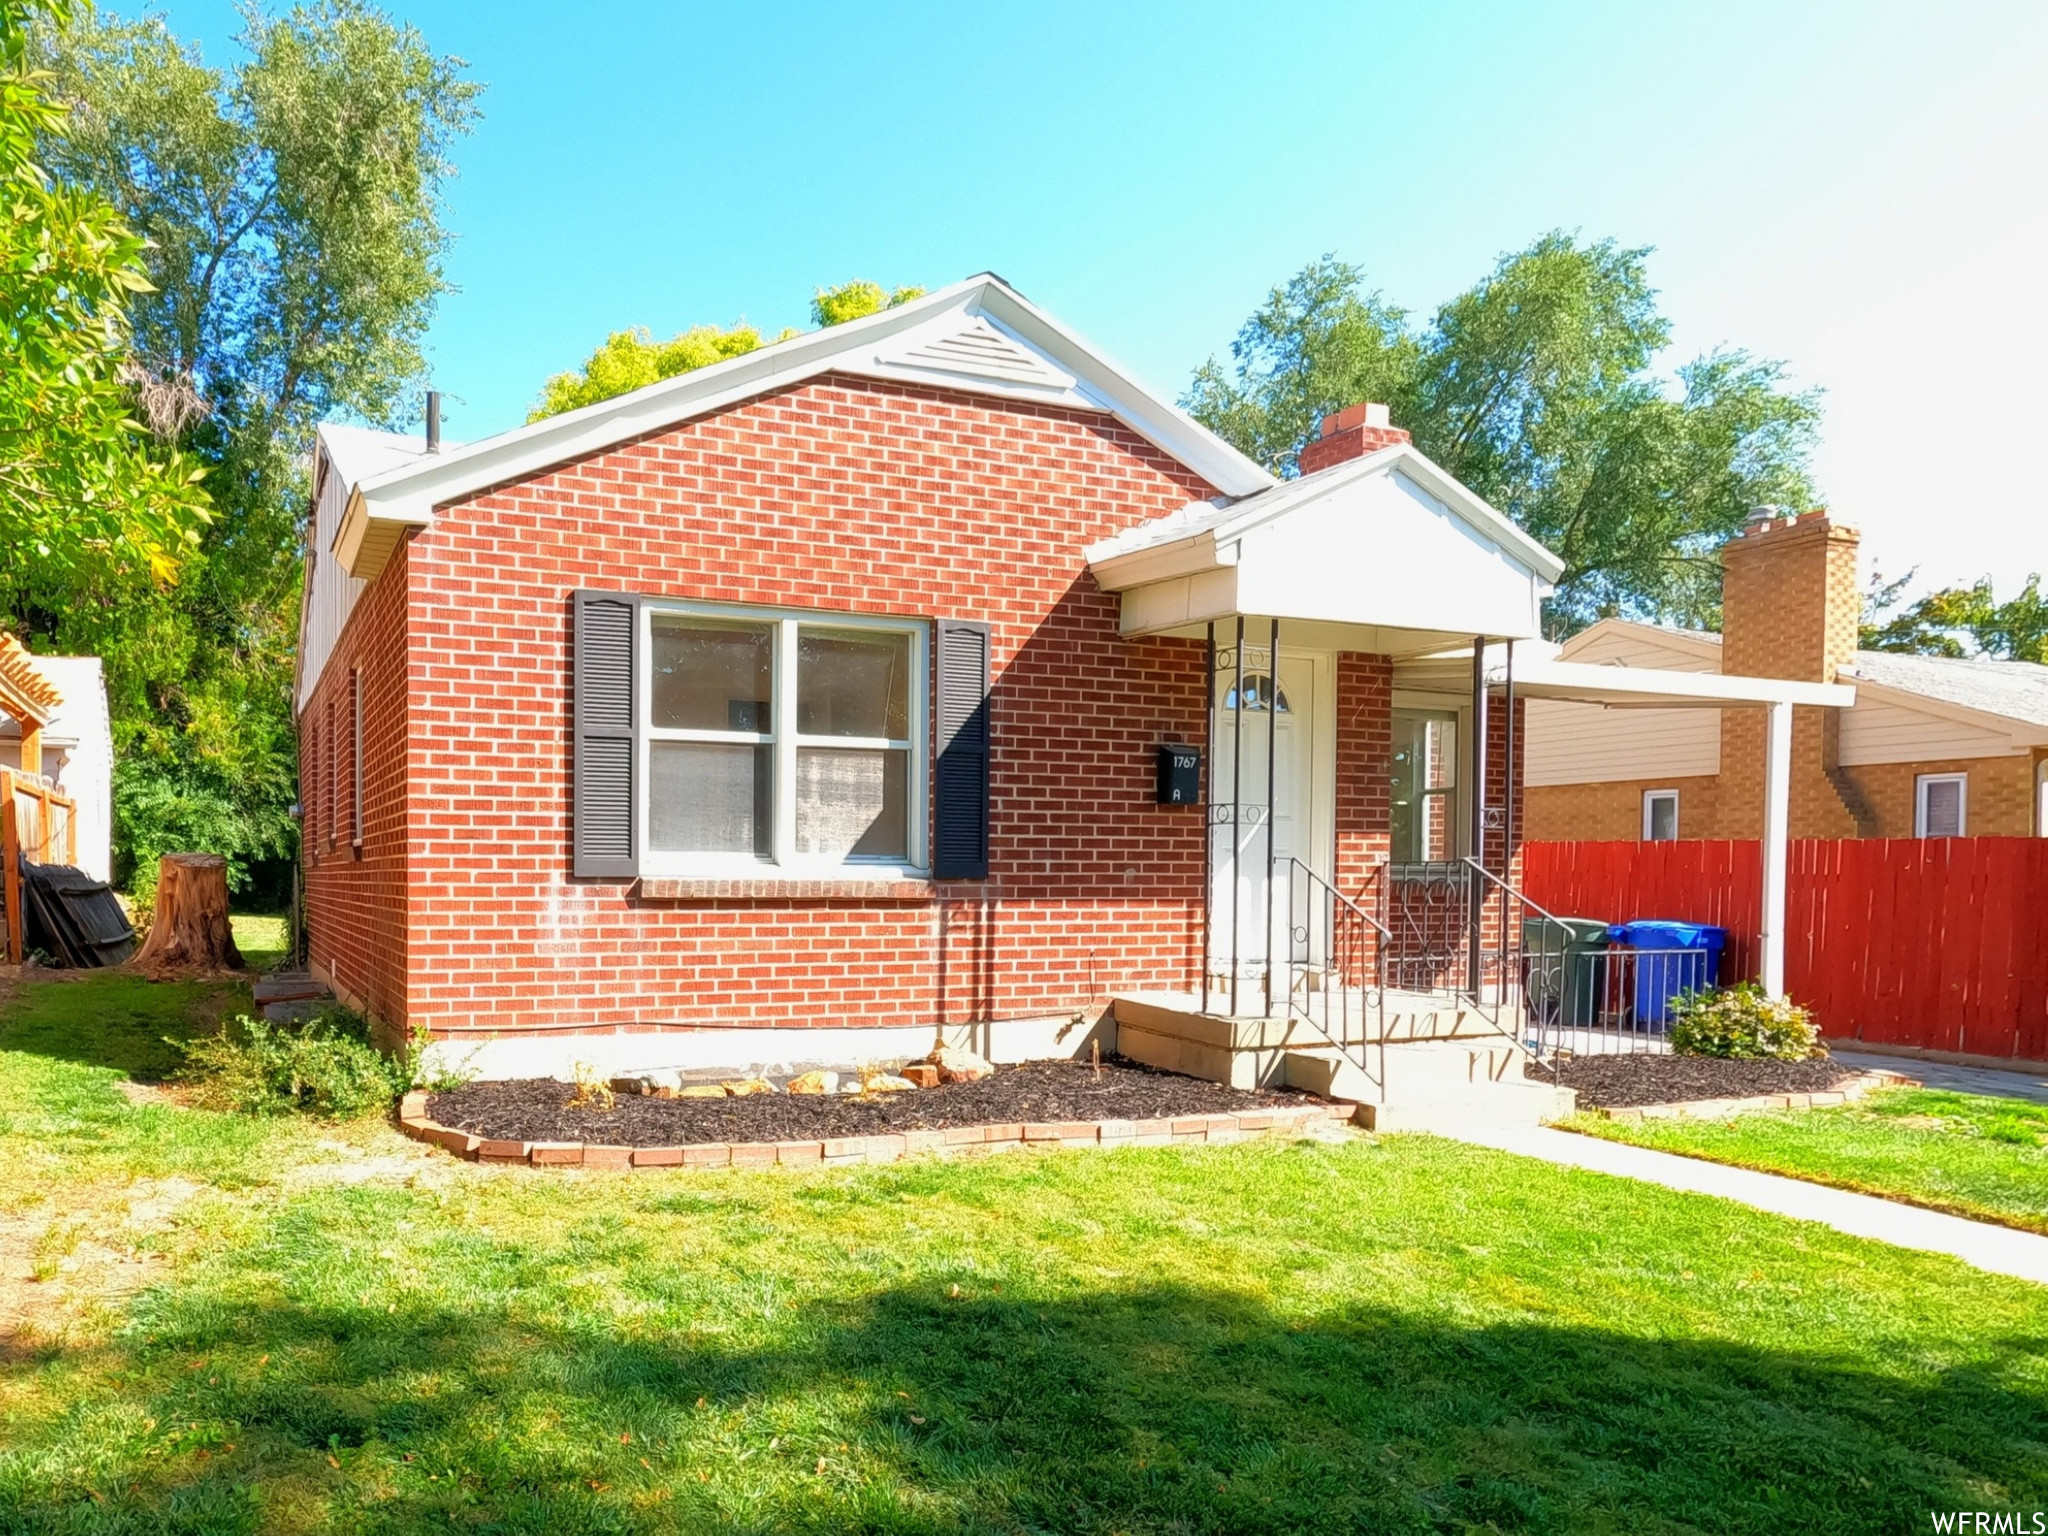 1728 SqFt House In Dilworth